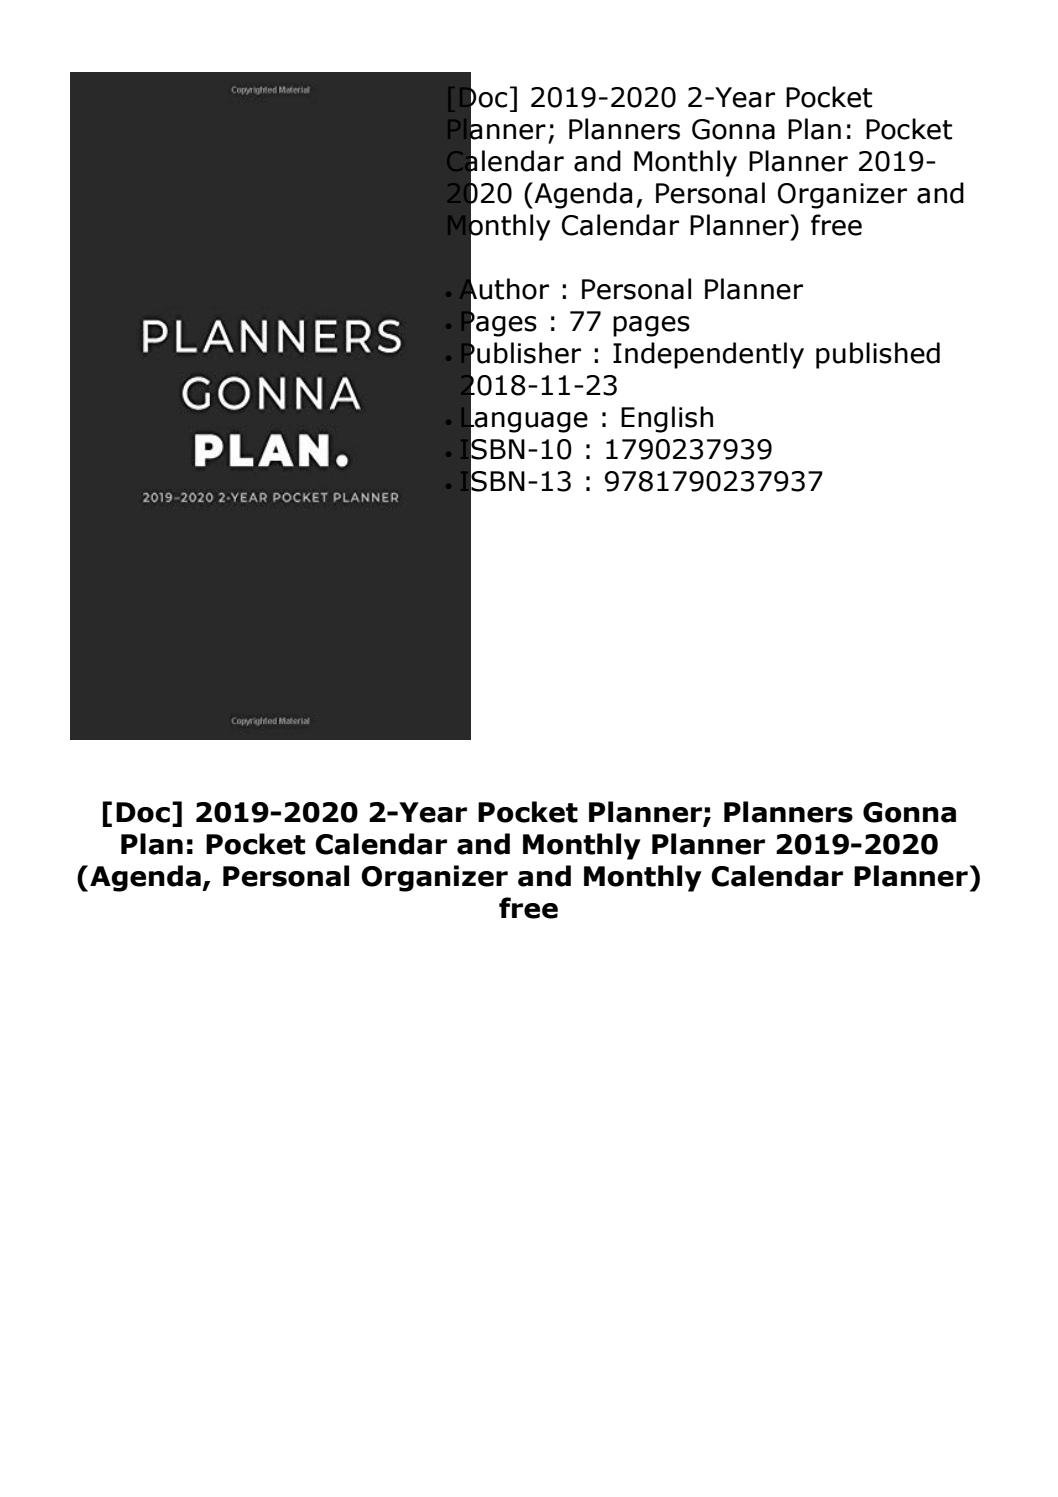 Doc] 2019 2020 2 Year Pocket Planner; Planners Gonna Plan: Pocket 2 Year Pocket Calendar 2019 And 2020